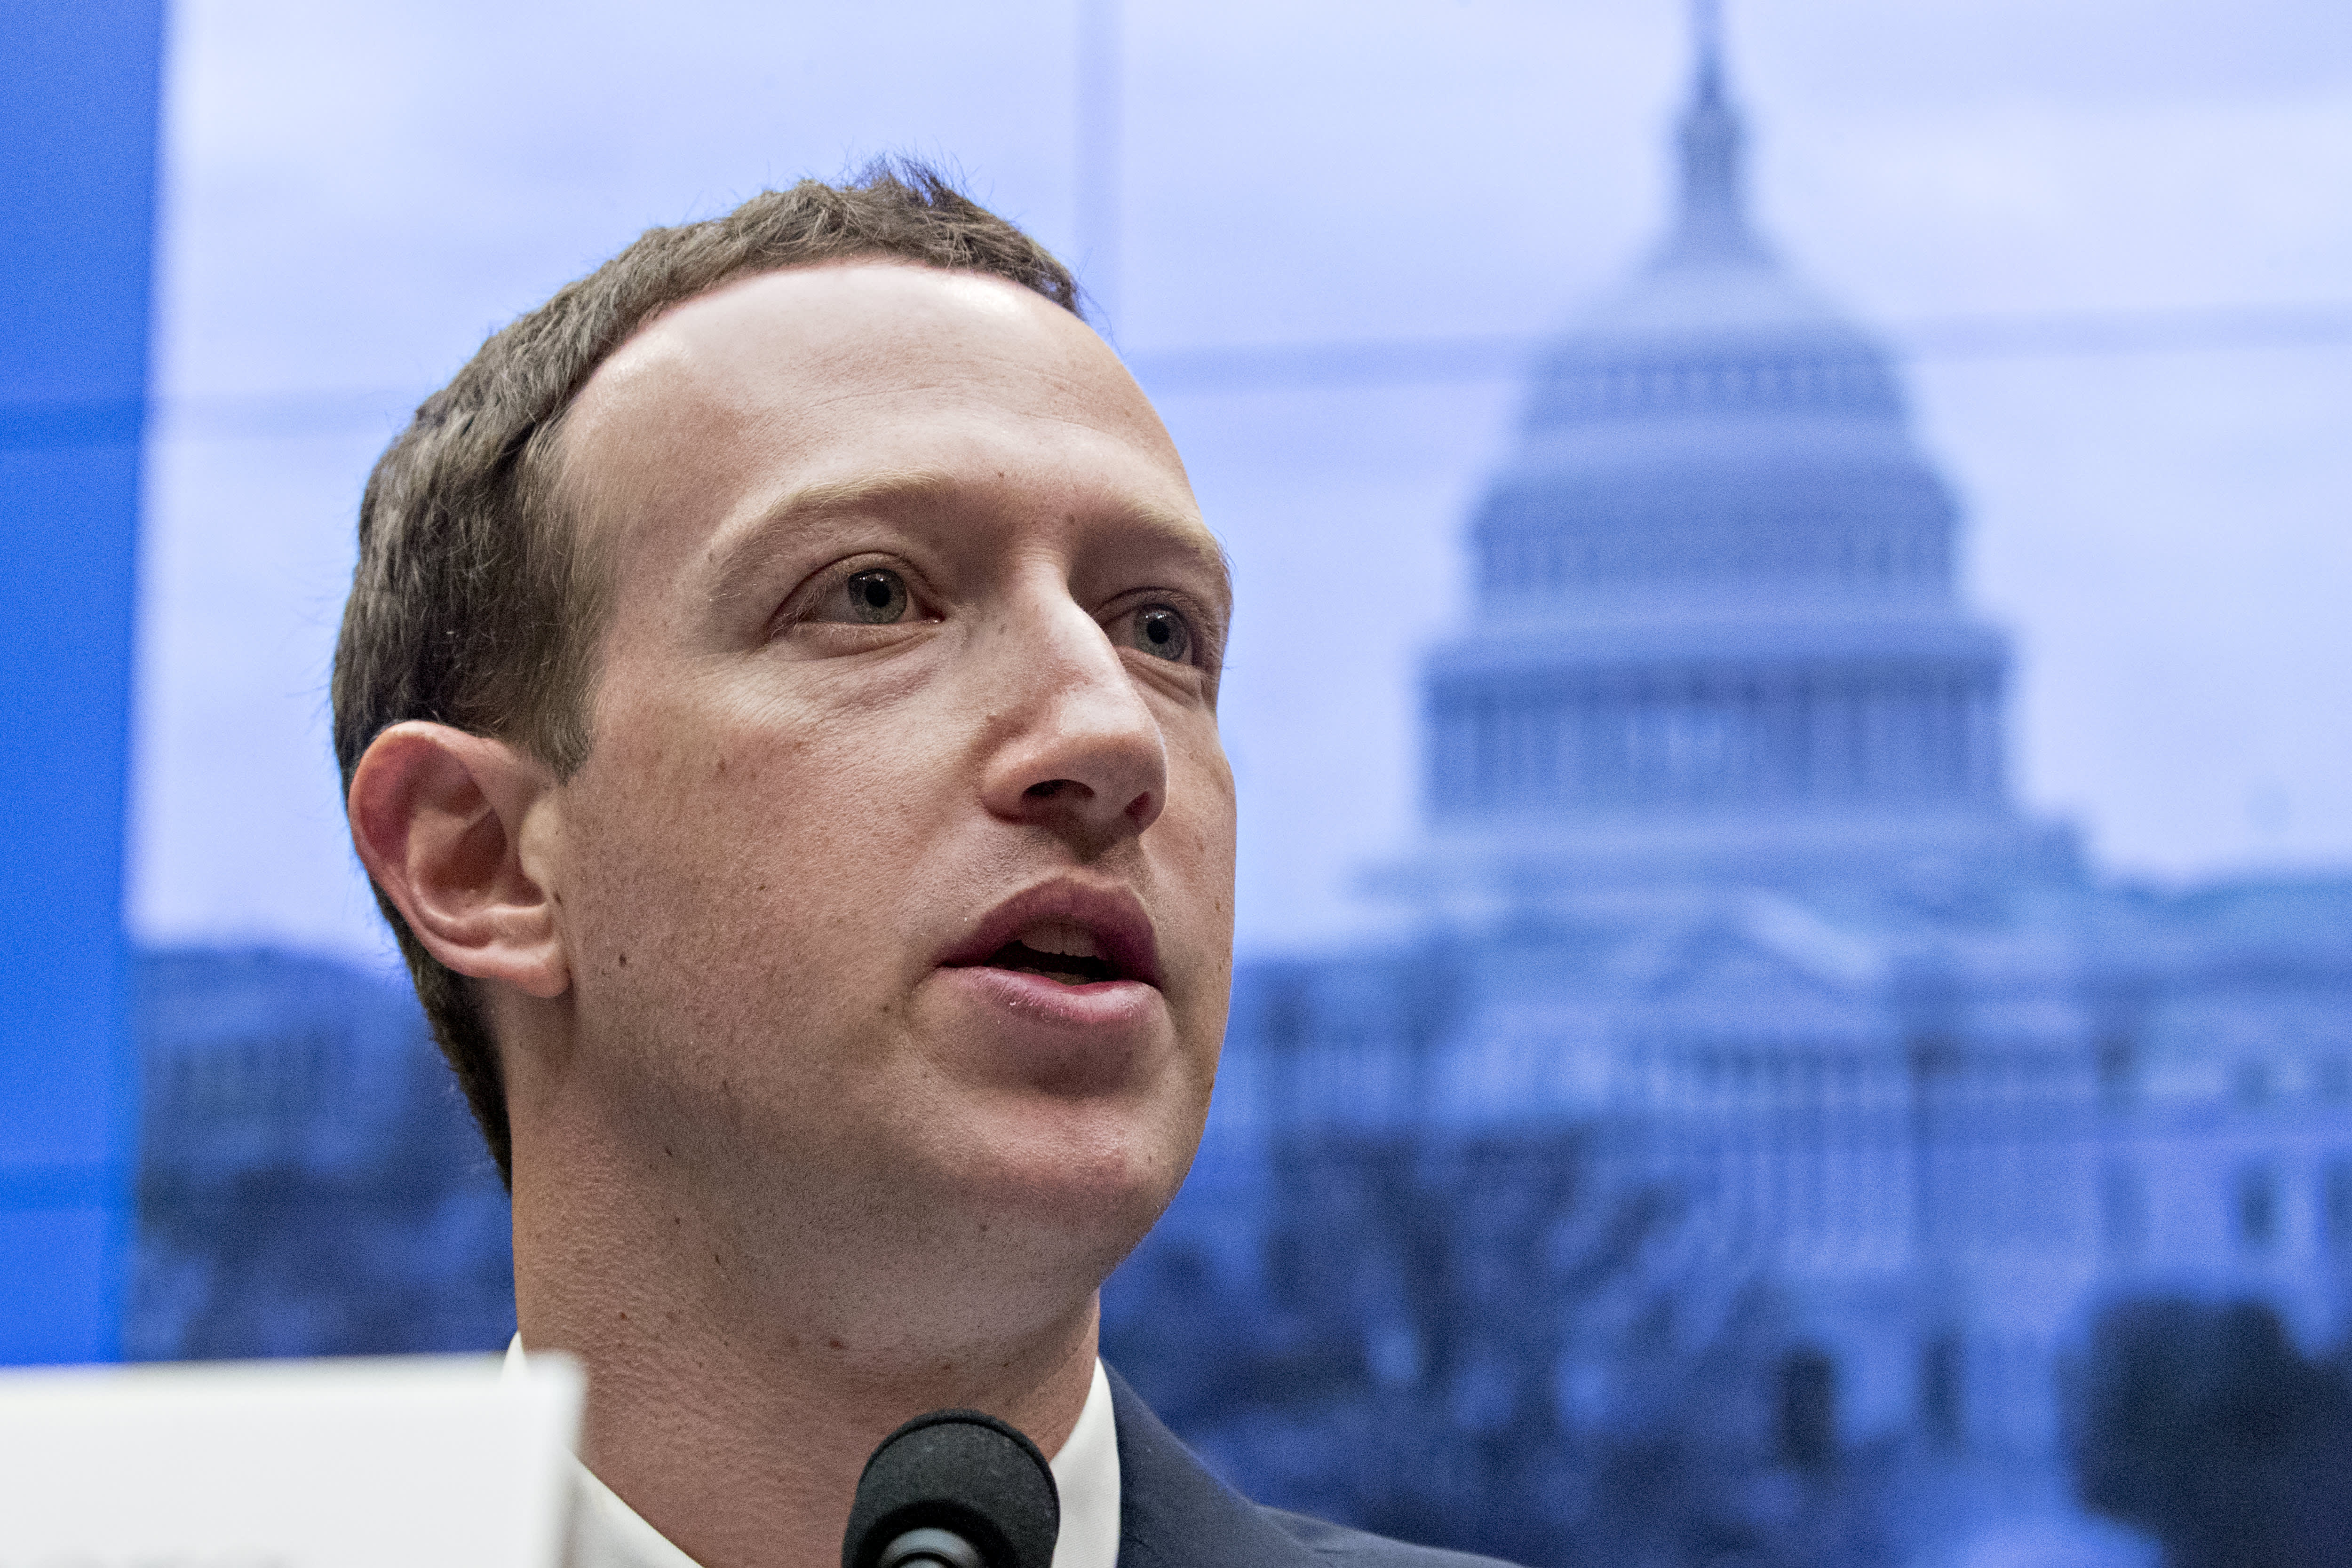 Zuckerberg rejects claims that Facebook prioritizes profits over user safety